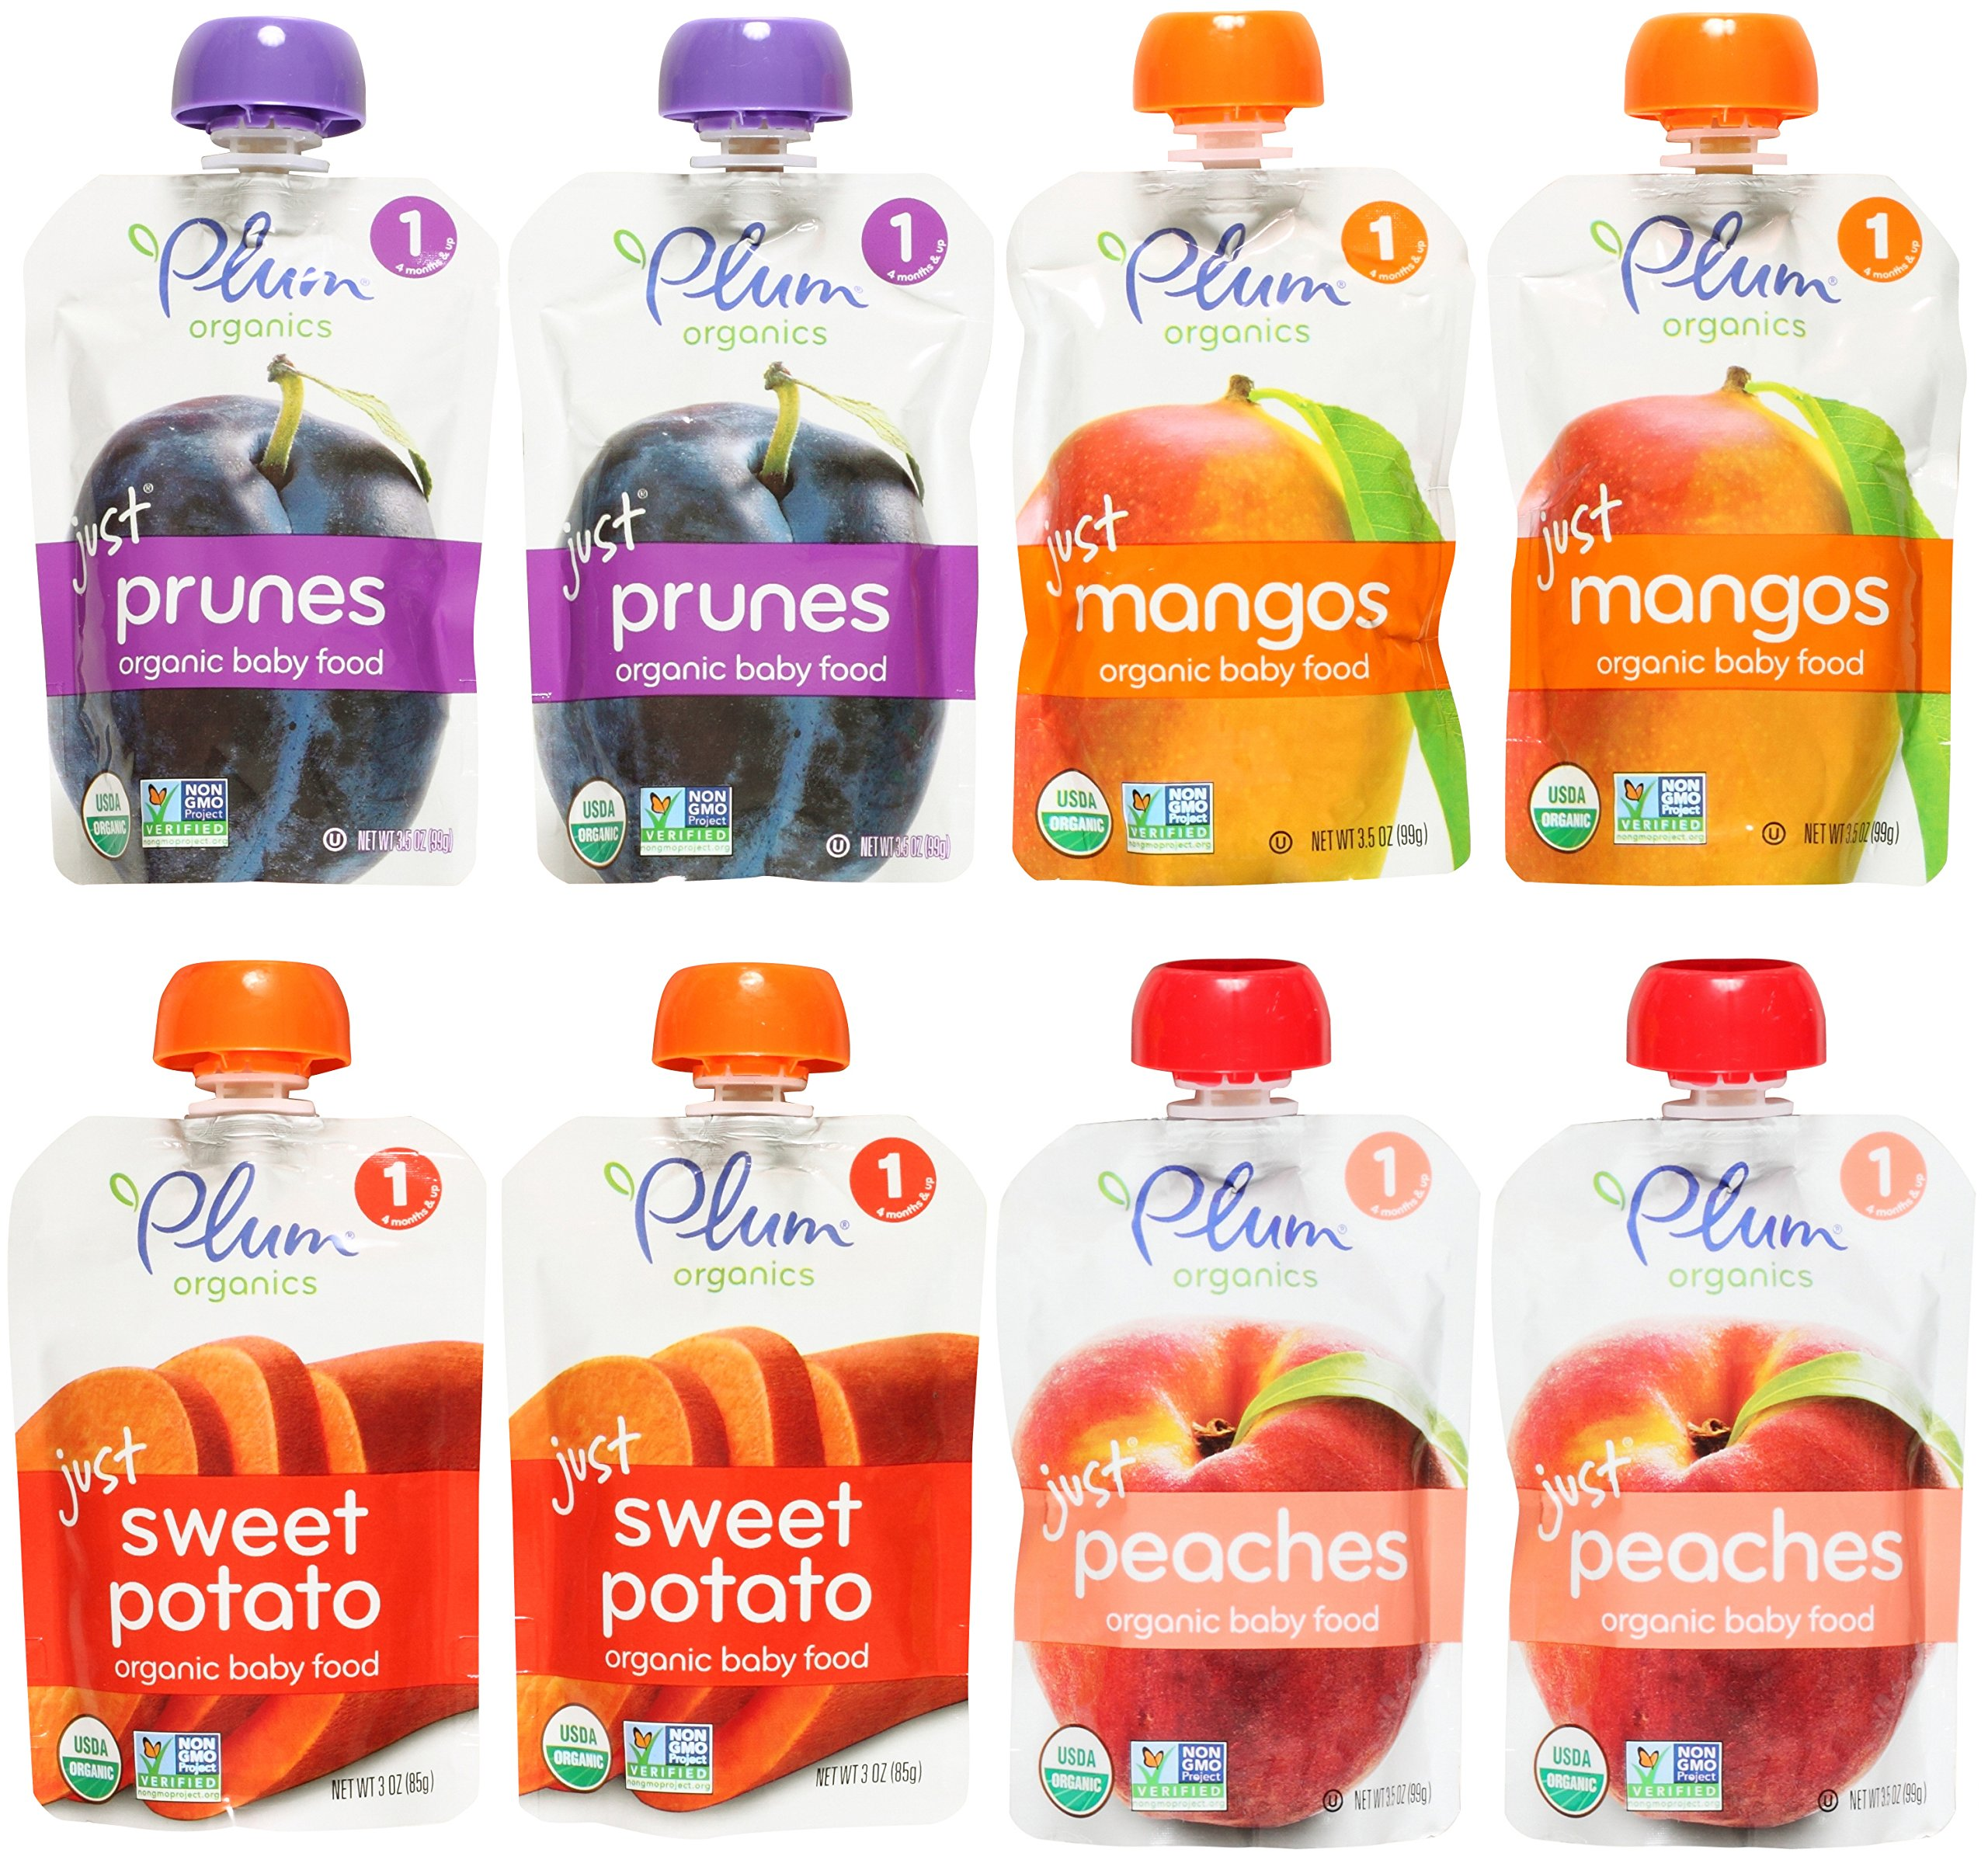 Plum Organics Stage 1 Just Fruit & Veggies Variety Pouch Bundle: (2) Just Prunes 3.5oz, (2) Just Mangos 3.5oz, (2) Just Sweet Potato 3oz, and (2) Just Peaches 3.5oz (8 Pack Total) by Plum Organics (Image #1)